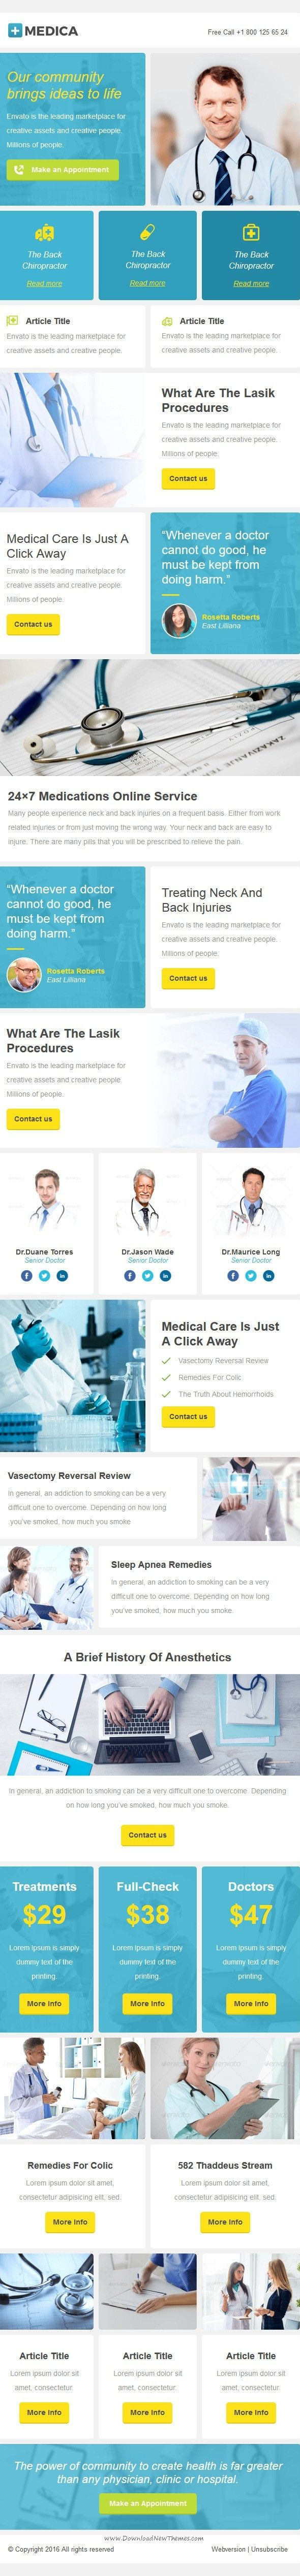 19 best HTML email templates images on Pinterest | Html email ...